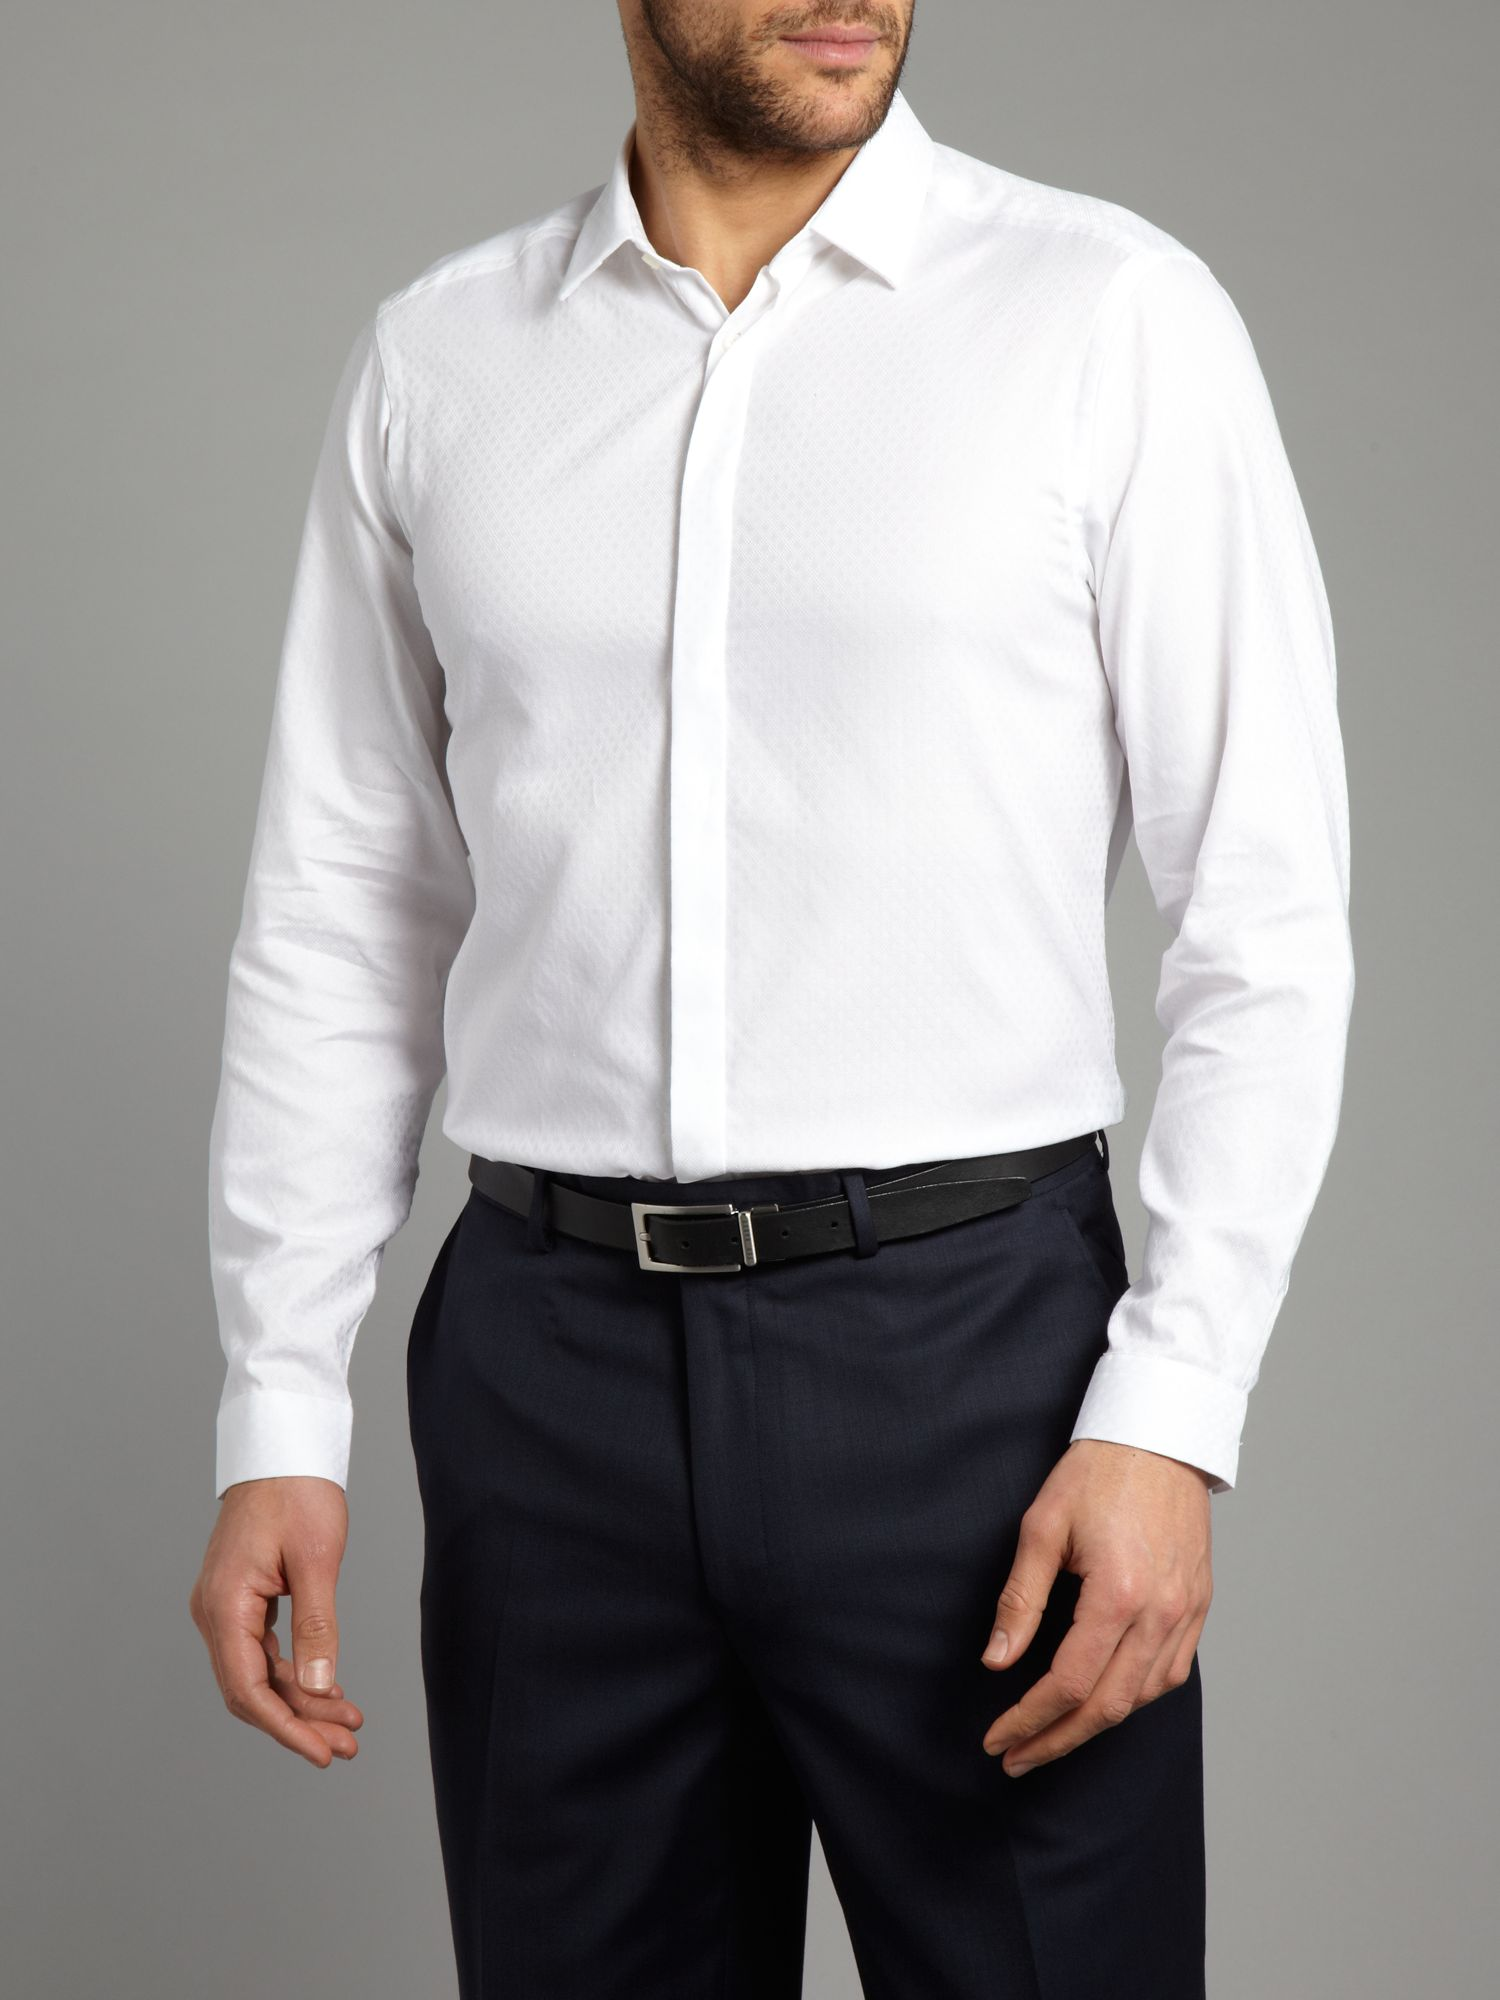 patrick cox longsleeve basket weave formal shirt in white